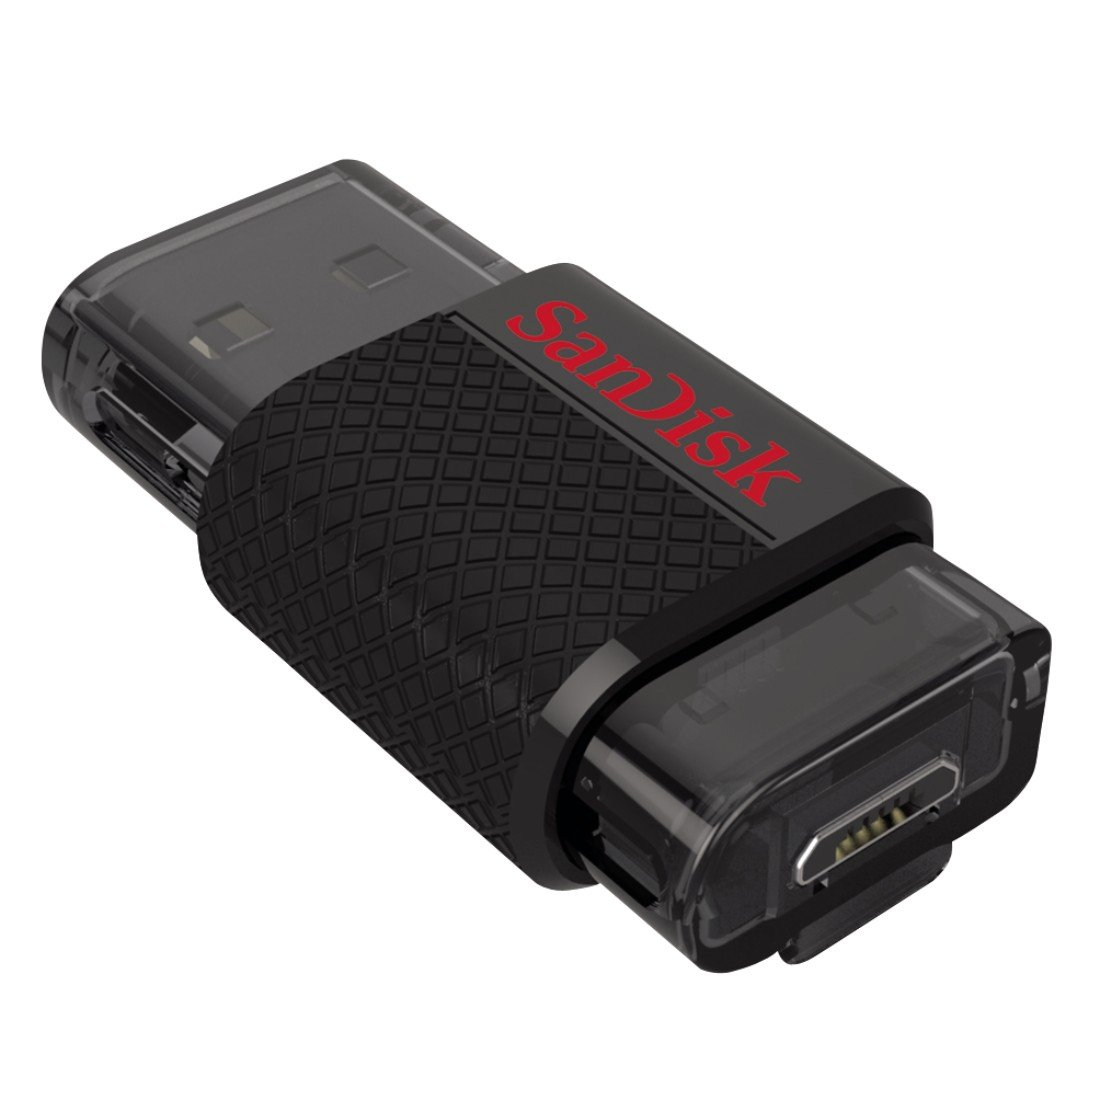 SanDisk Ultra 32GB Micro USB 2.0 OTG Flash Drive For Android Smartphone/Tablet With App- SDDD-032G-G46 by SanDisk (Image #1)